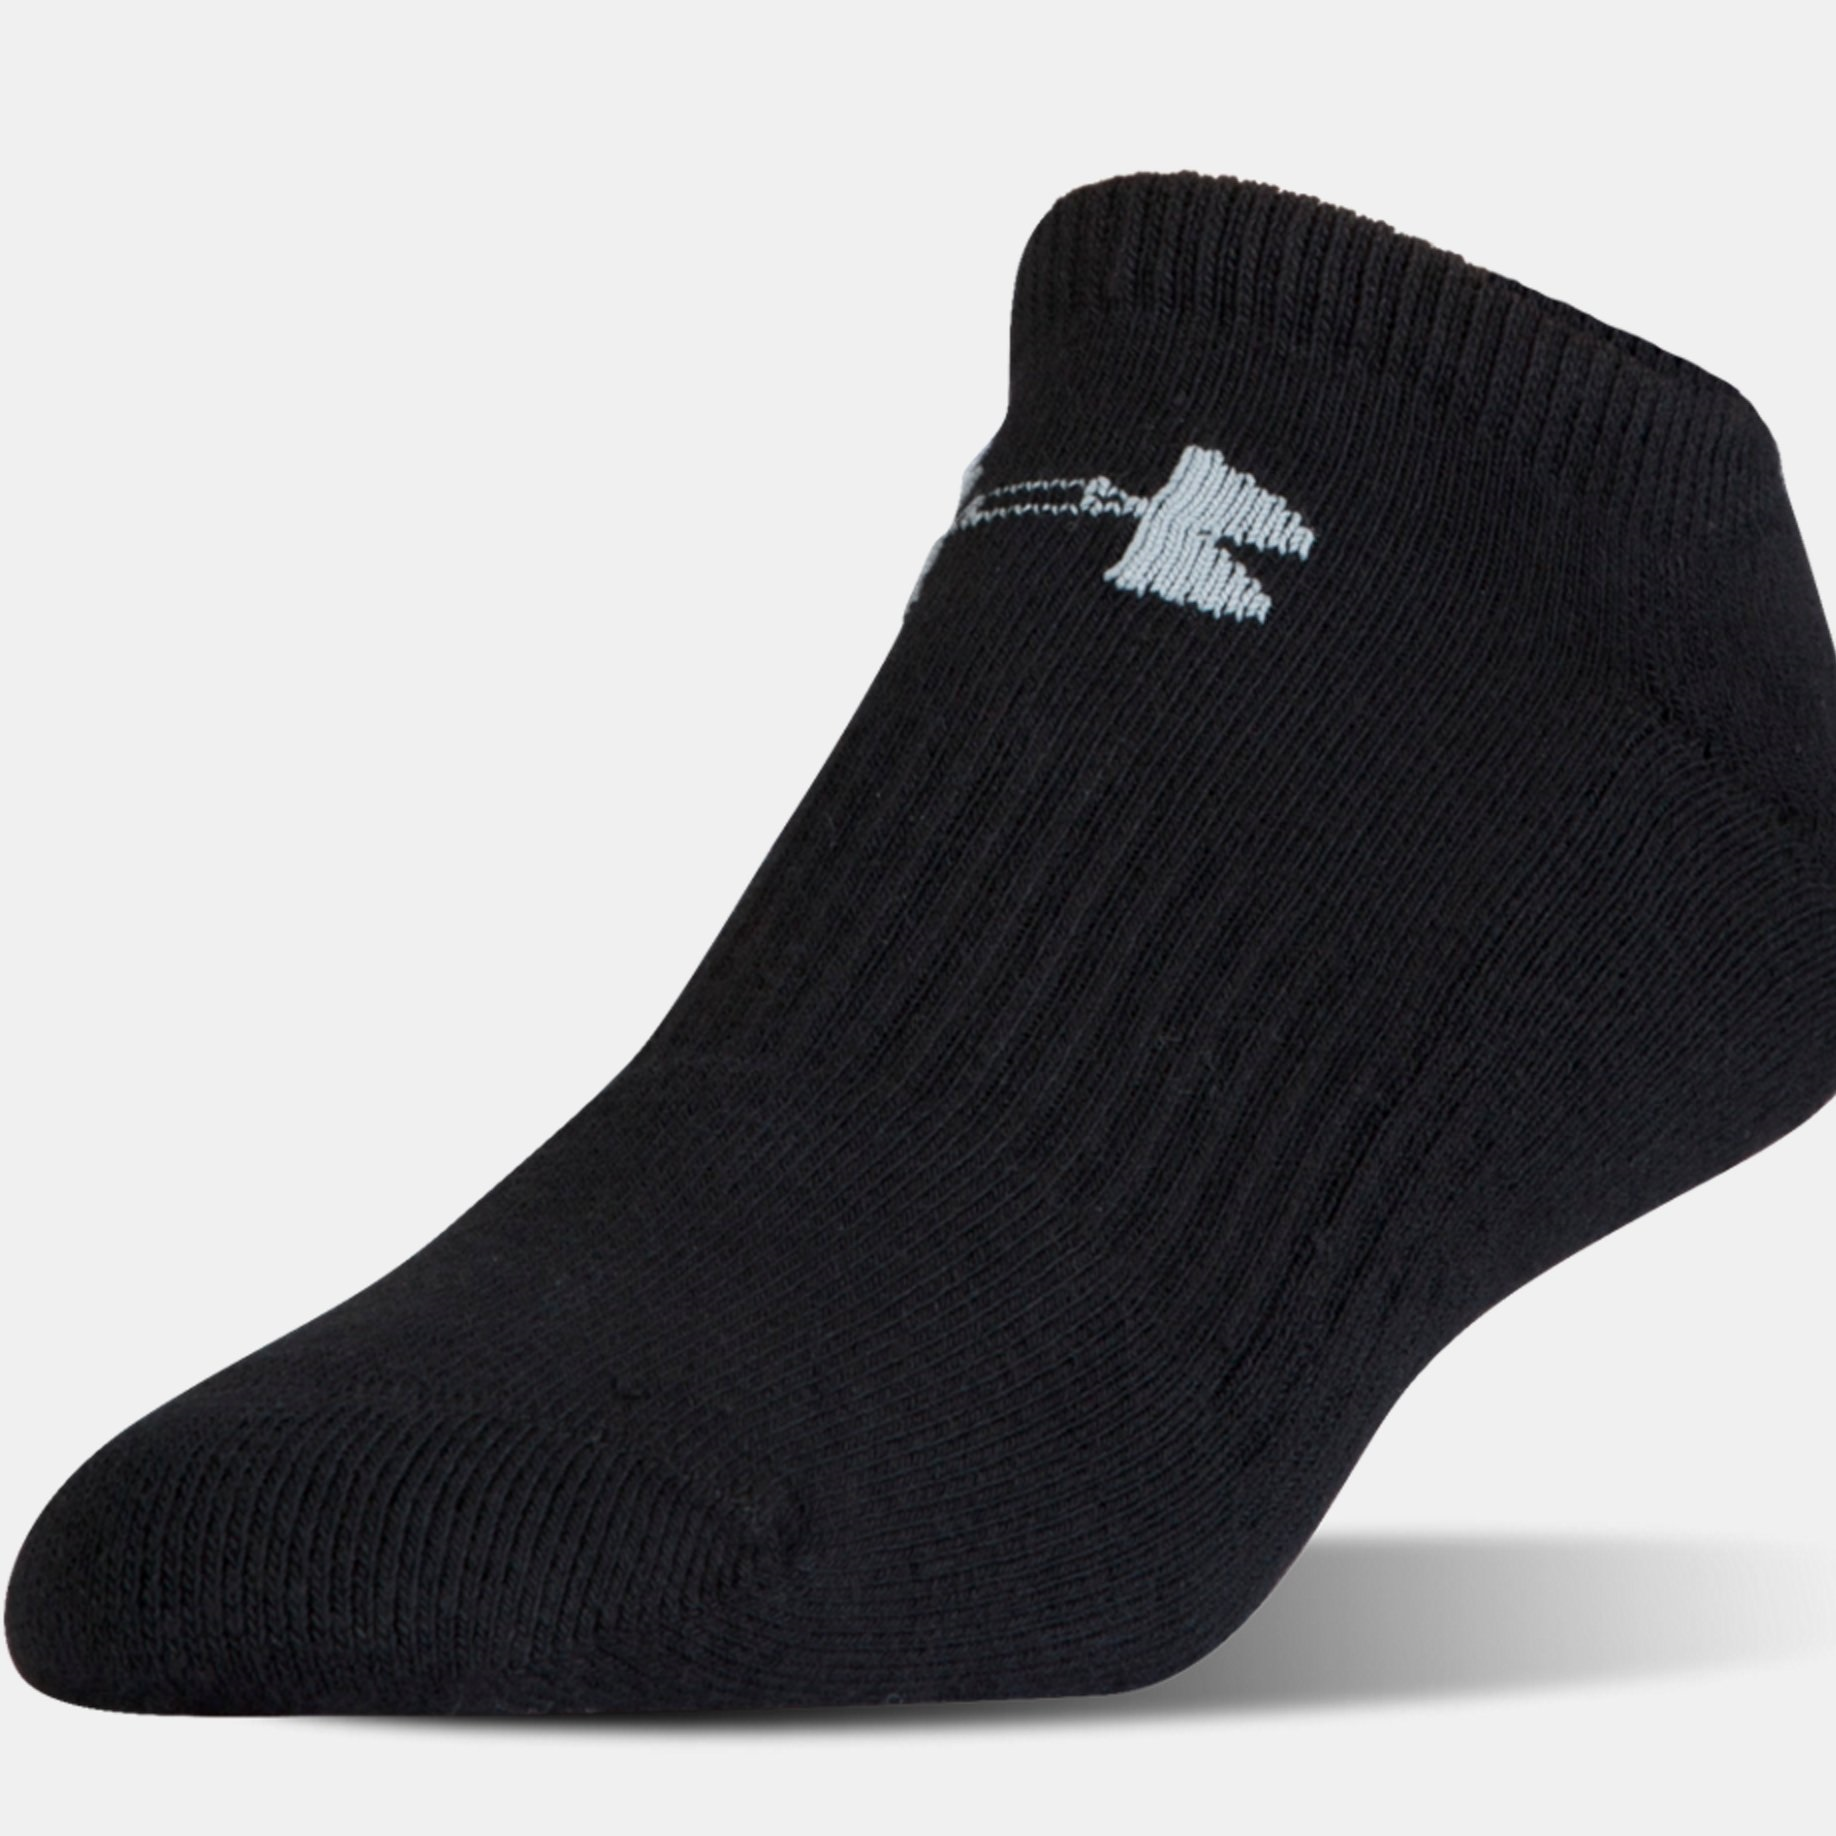 583ff6577c3 Accessories - under armour 2.0 No Show 6-Pack Socks